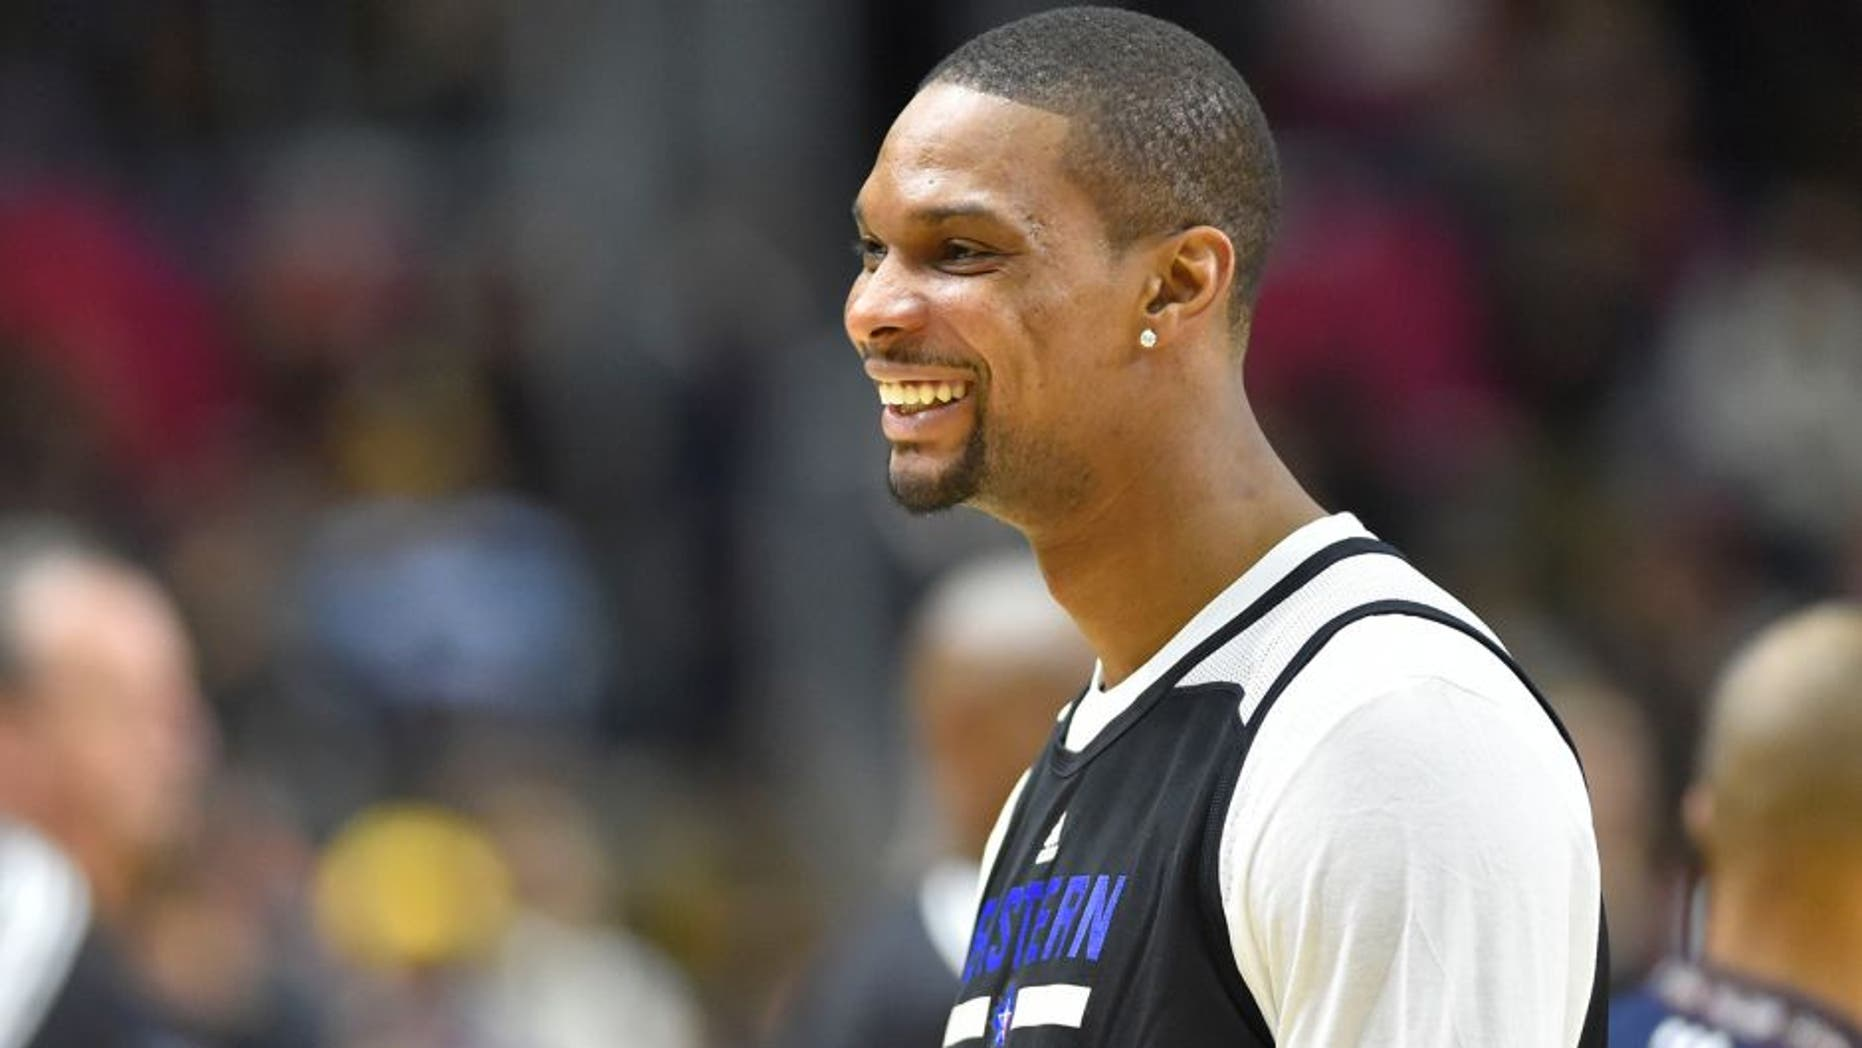 Feb 13, 2016; Toronto, Ontario, Canada; Eastern Conference forward Chris Bosh of the Miami Heat (1) looks on during practice for the NBA All Star game at Ricoh Coliseum. Mandatory Credit: Bob Donnan-USA TODAY Sports